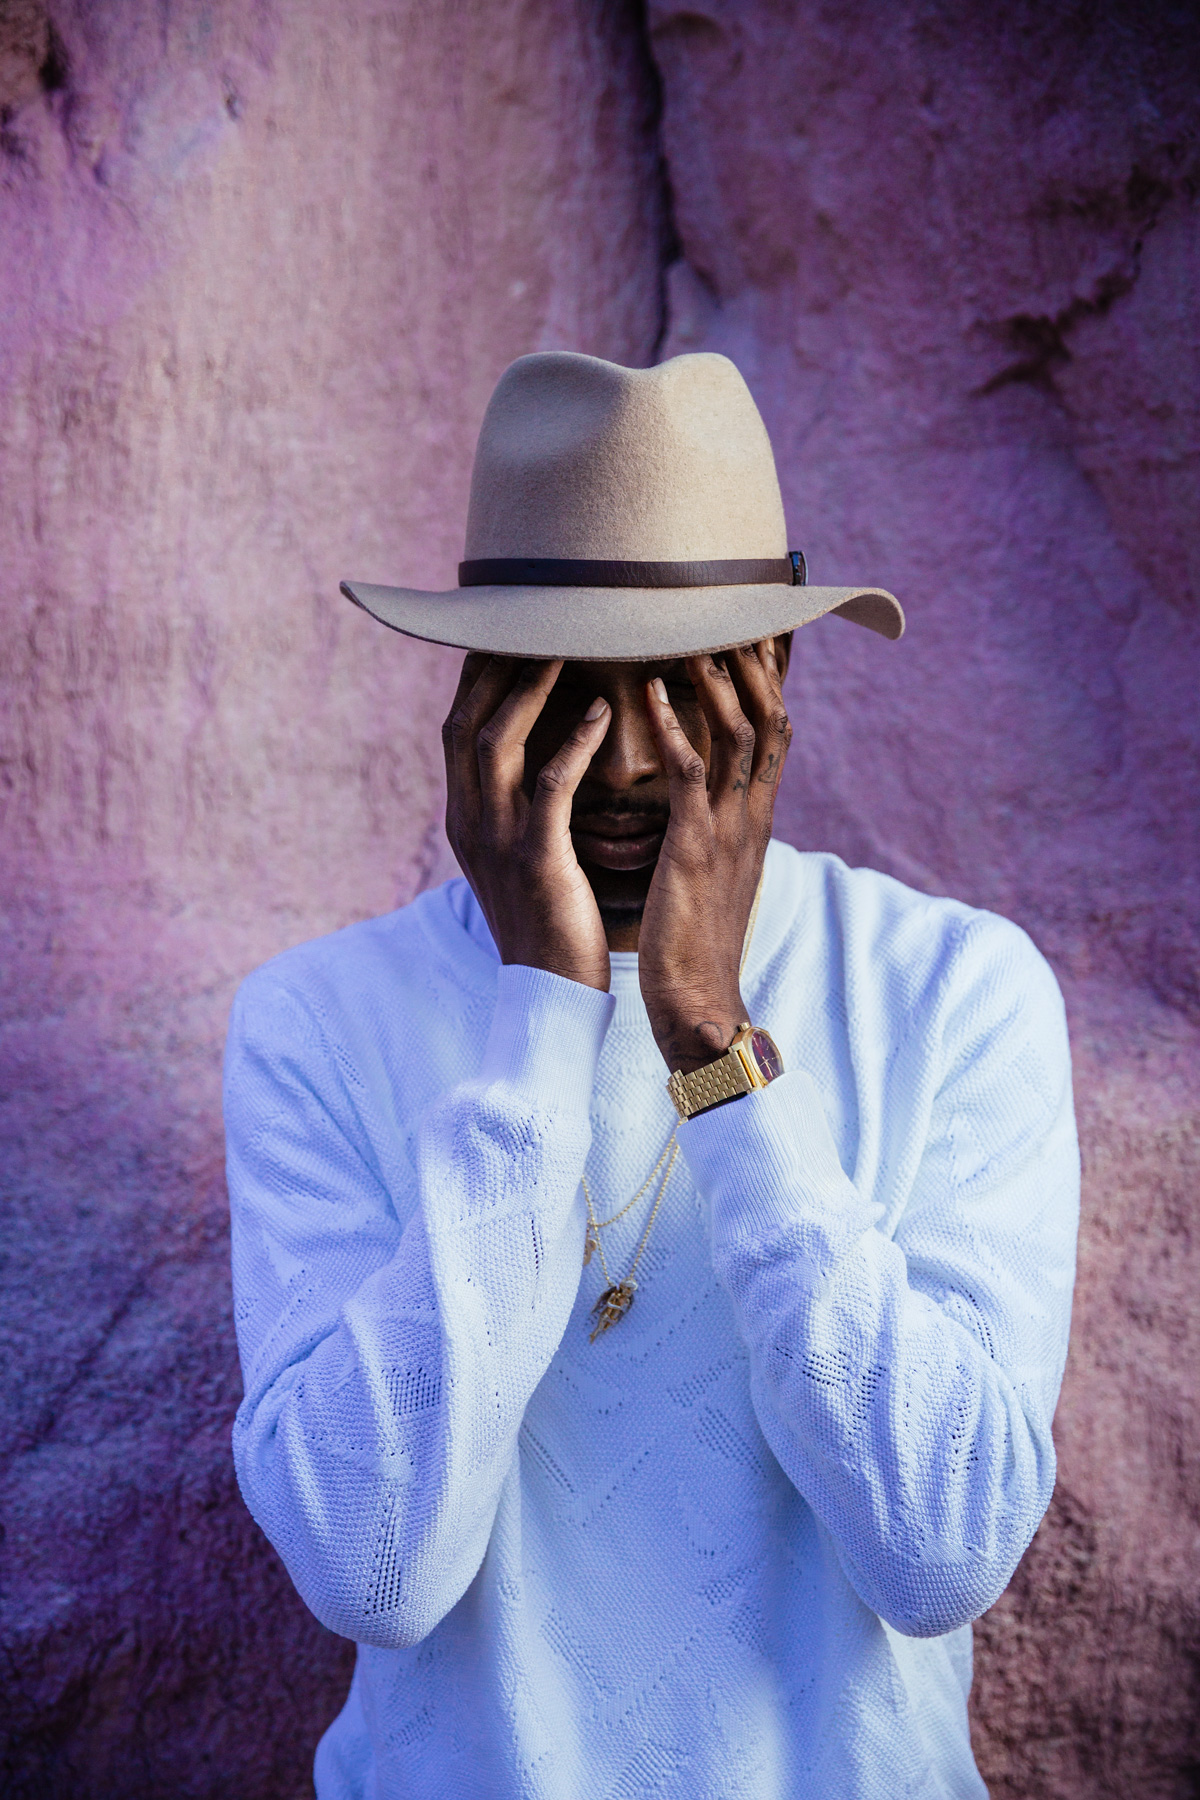 Pries album cover hands covering face